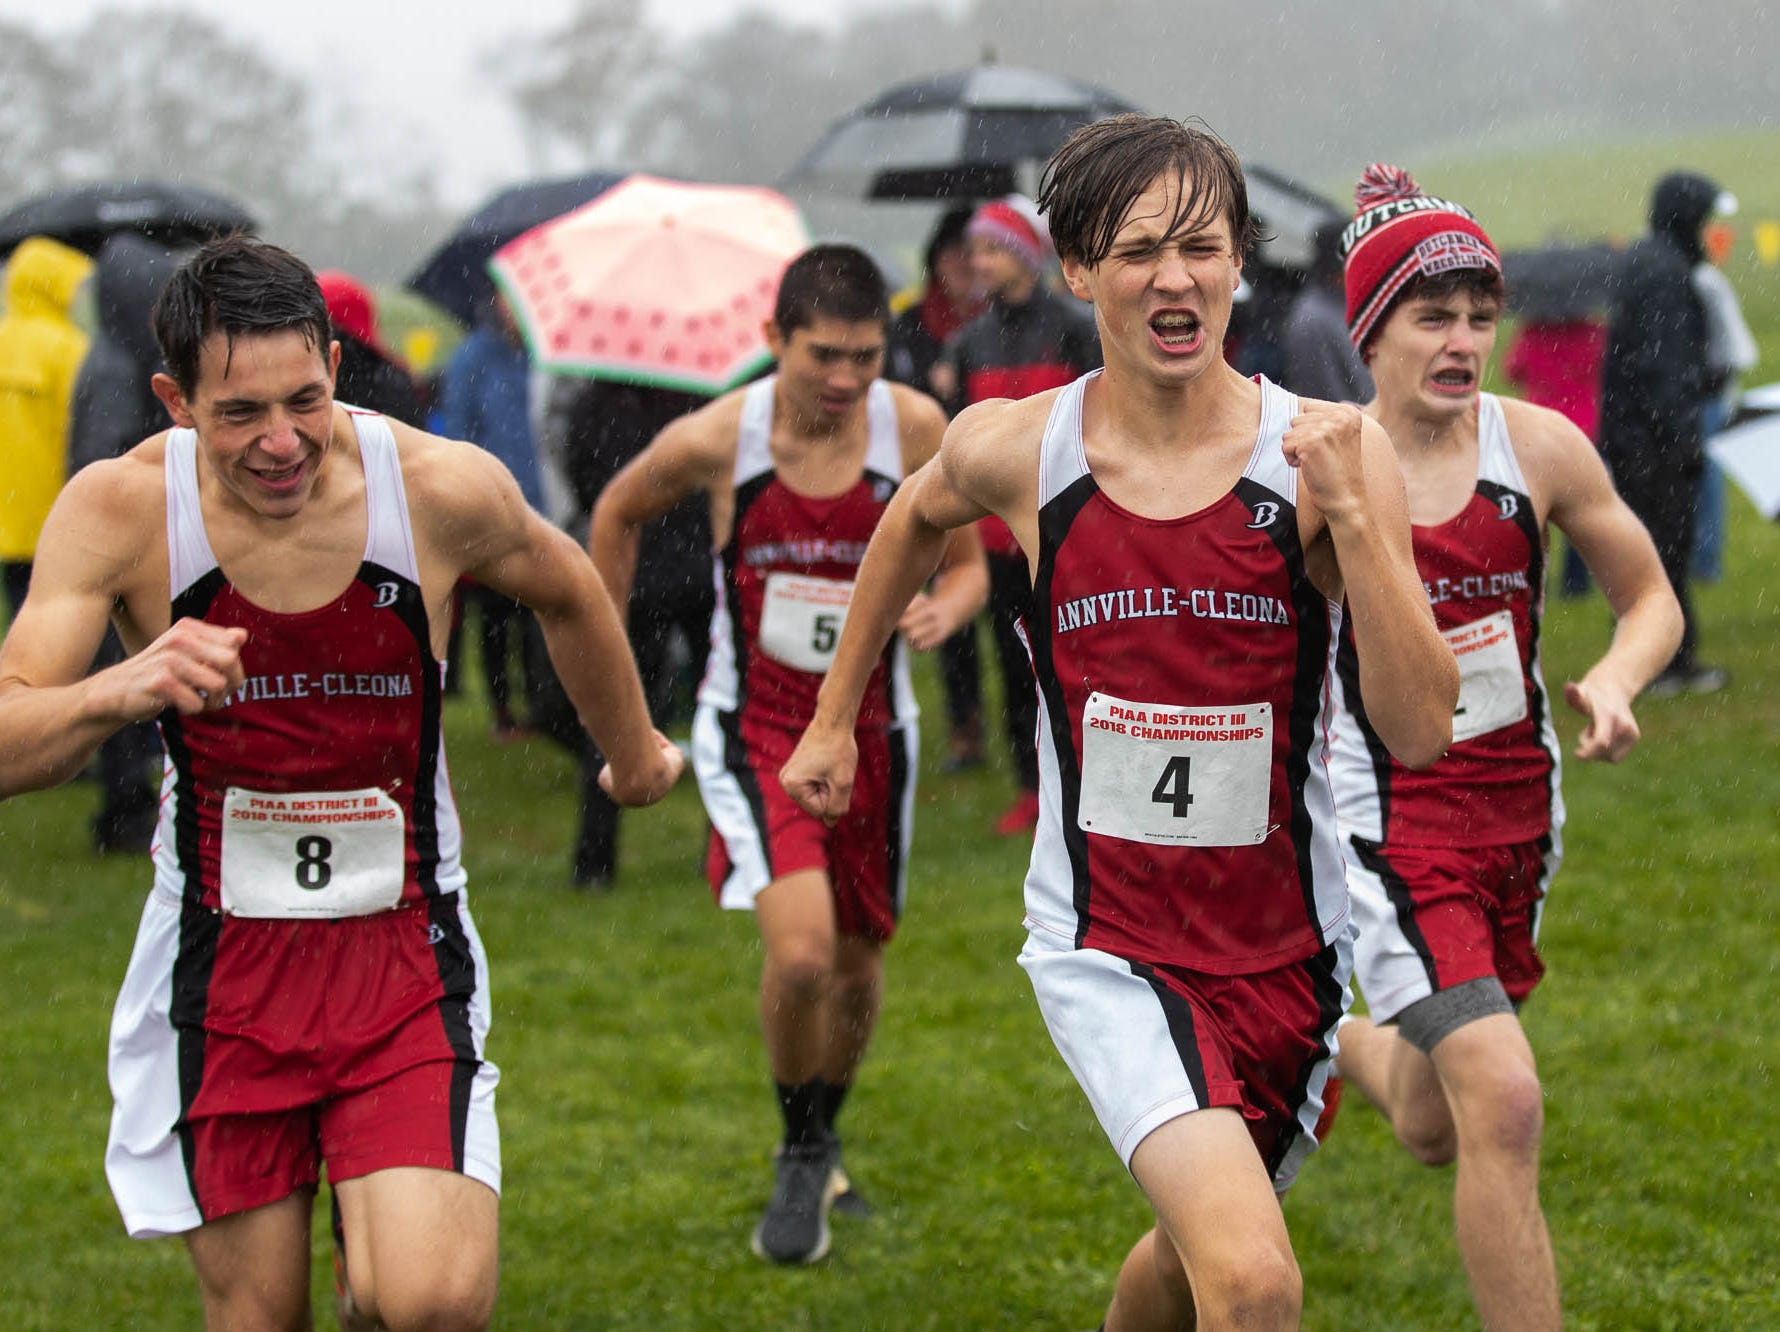 Annville-Cleona's Boys AA team warms up during the PIAA District III Cross Country Championship, Saturday, Oct. 27, 2018, at Big Spring High School in Newville.